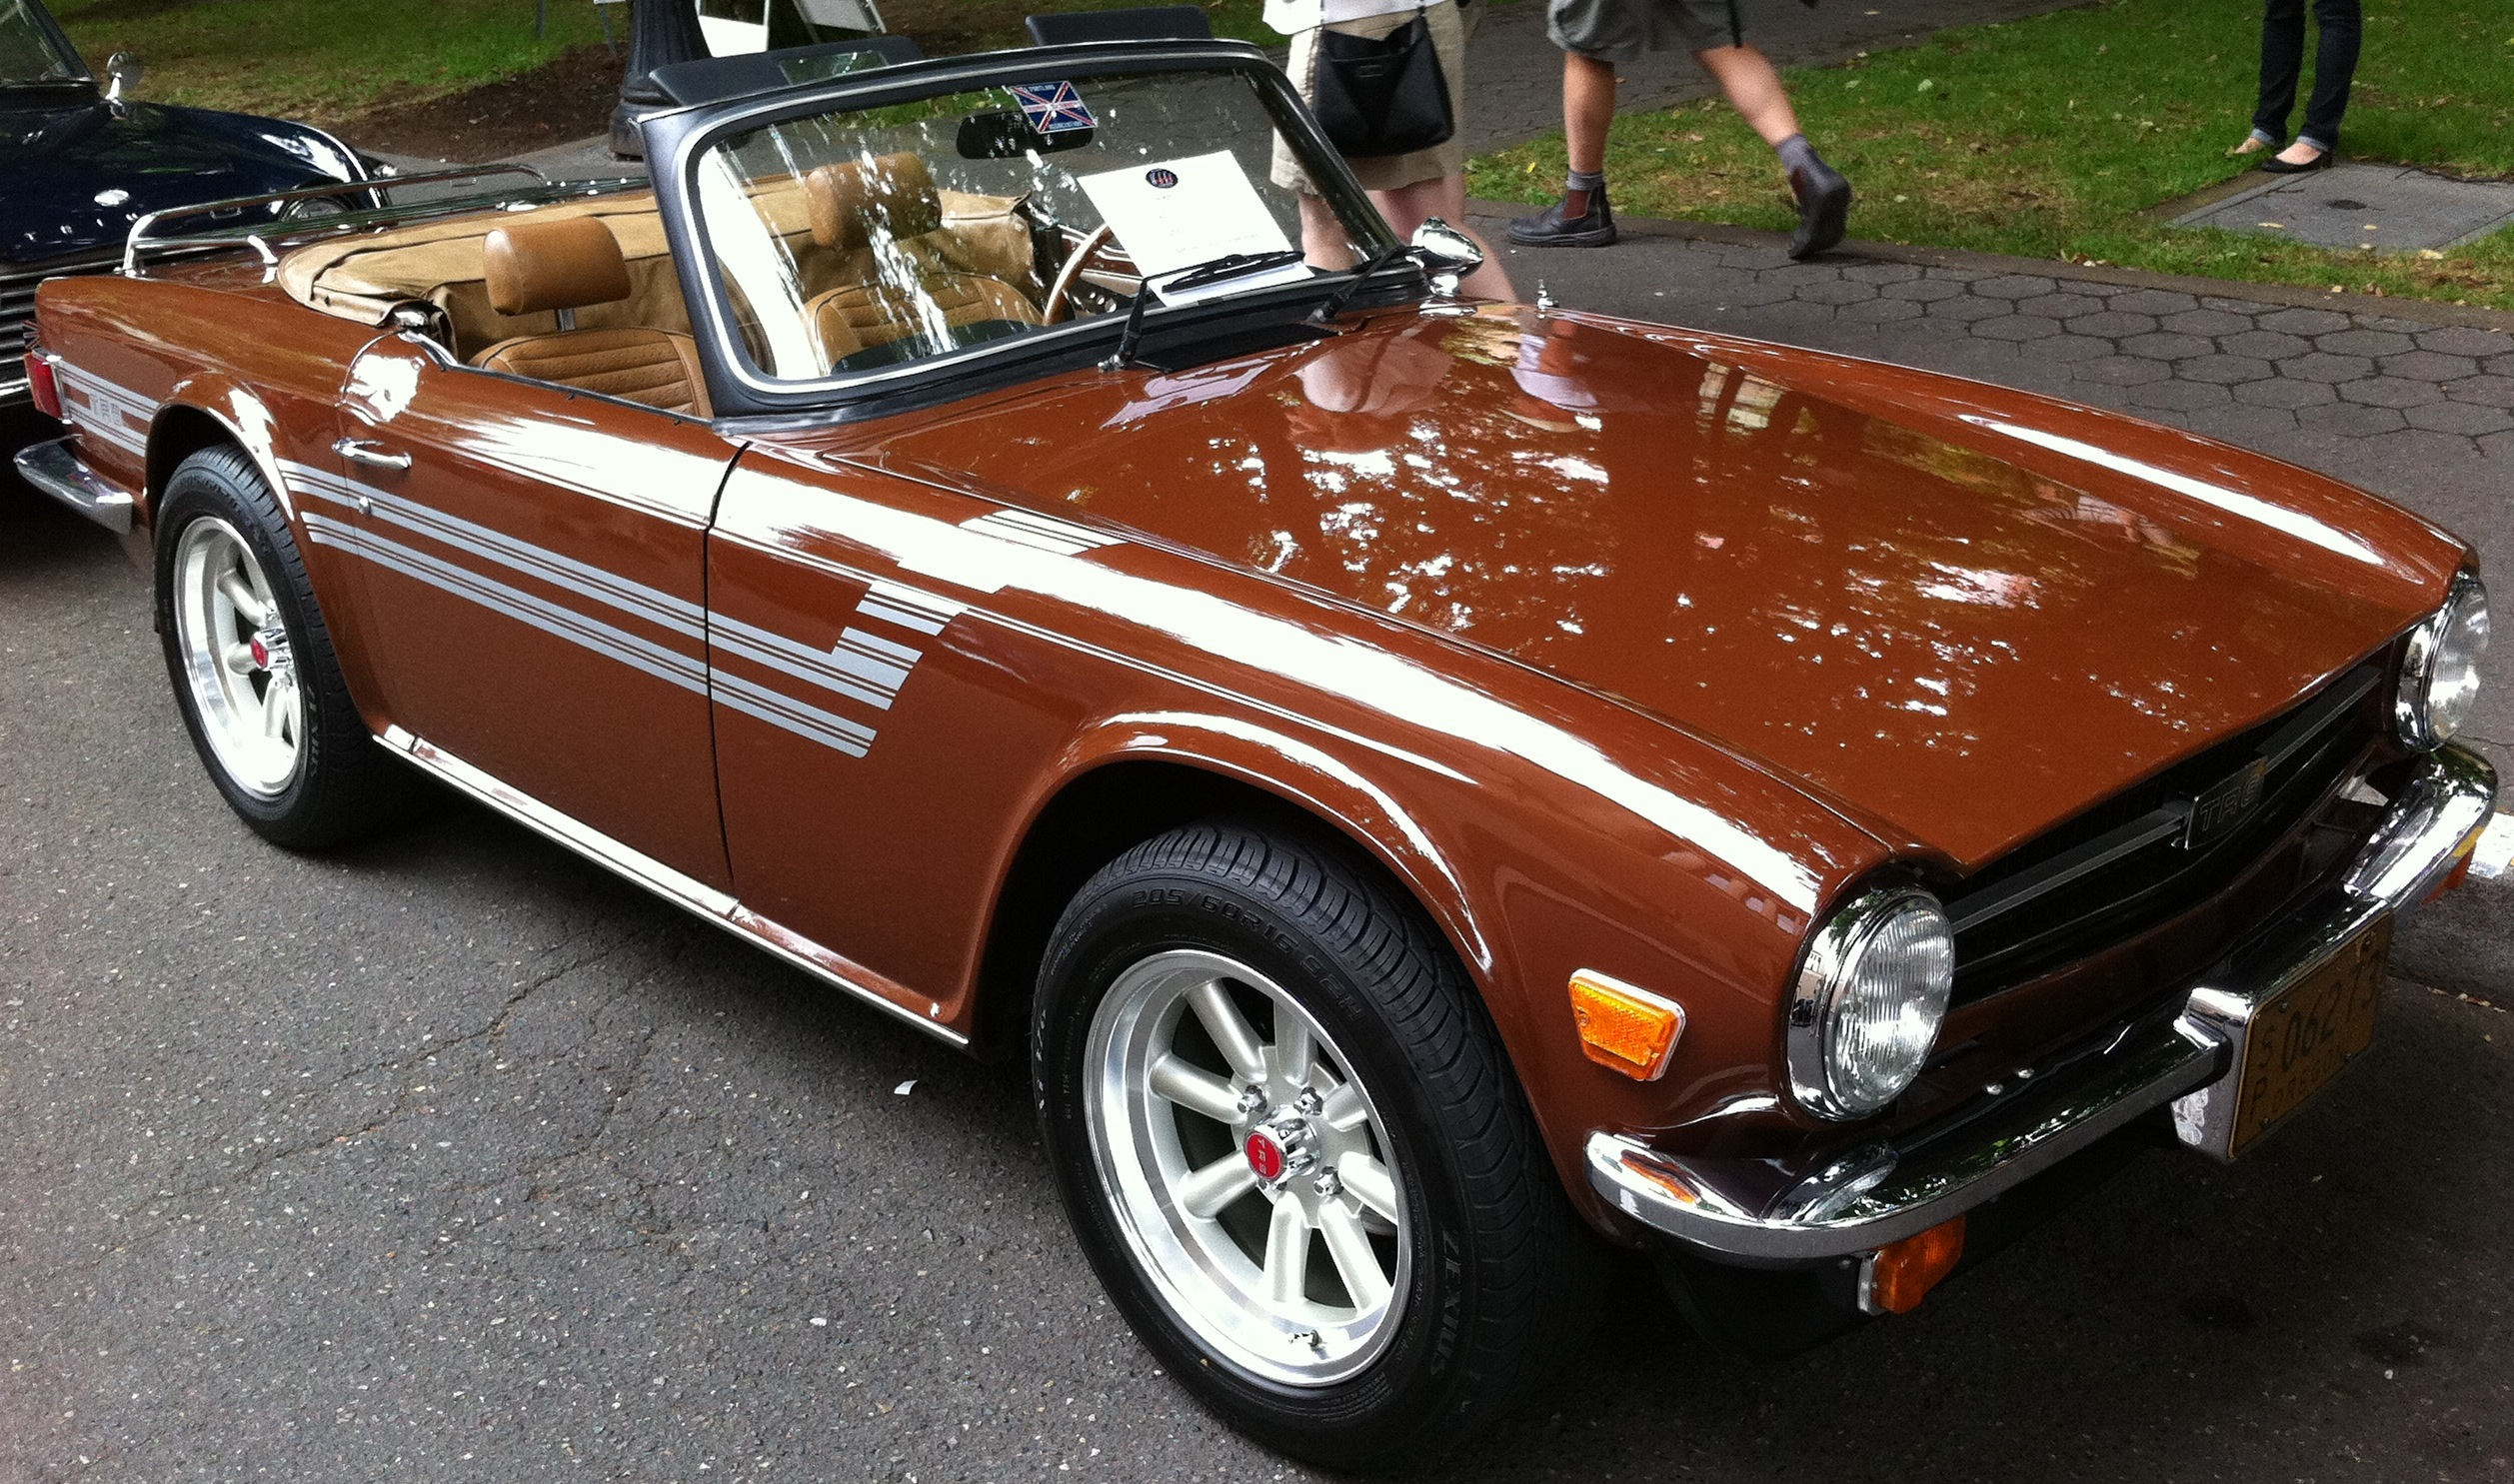 1976 Triumph TR6 Photos, Informations, Articles - BestCarMag.com